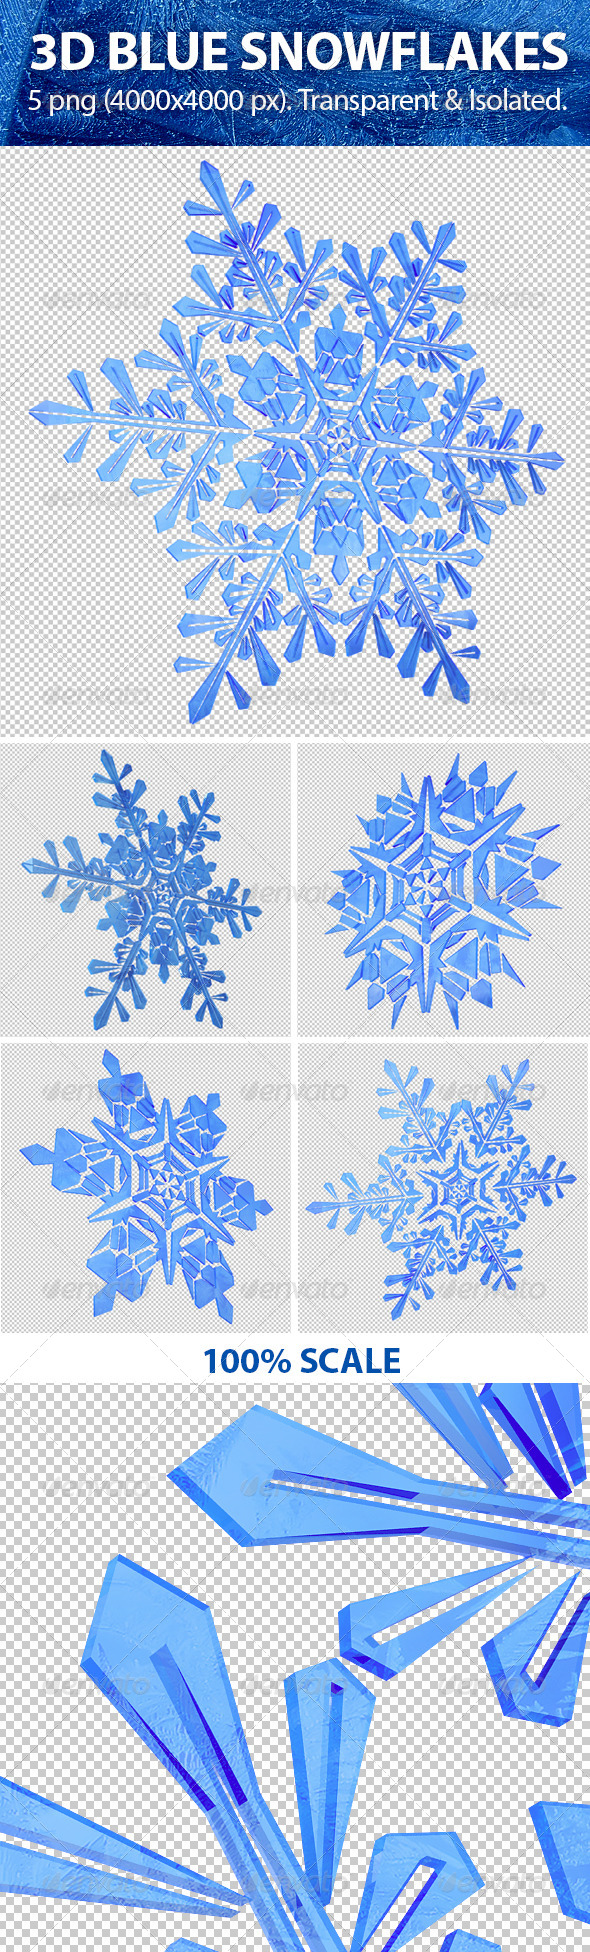 3D Blue Snowflakes - Miscellaneous 3D Renders